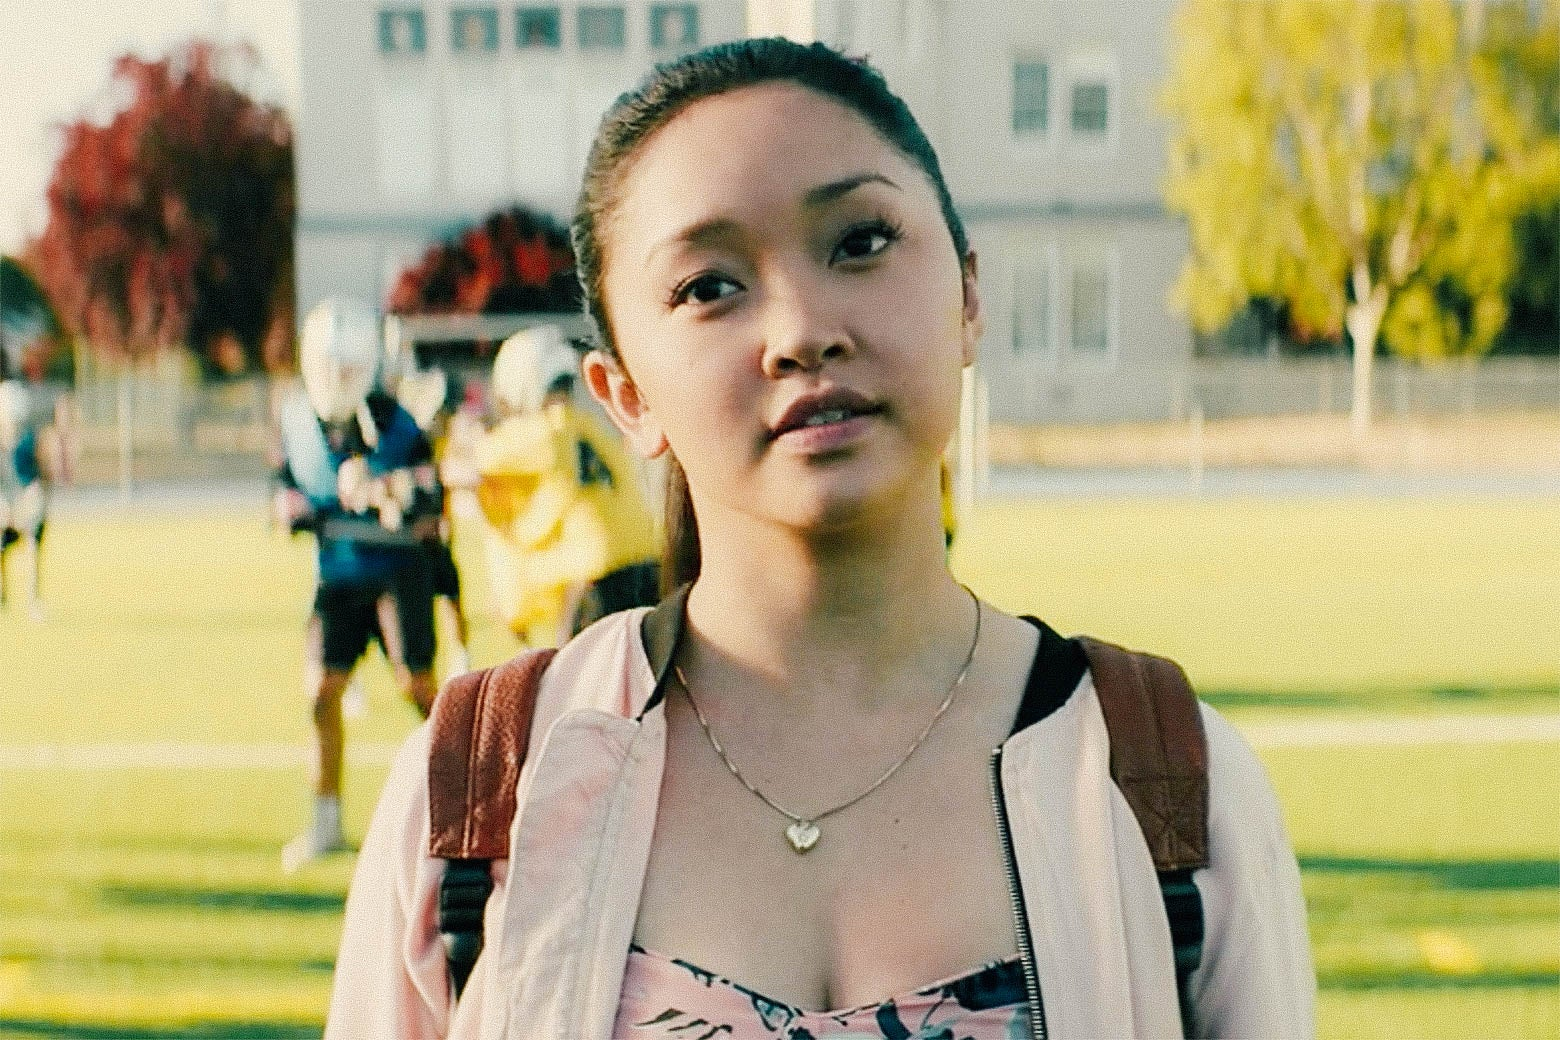 In a scene from To All the Boys I've Loved Before, Lara Jean (Lana Condor) stands on a lacrosse field, looking forward wistfully.